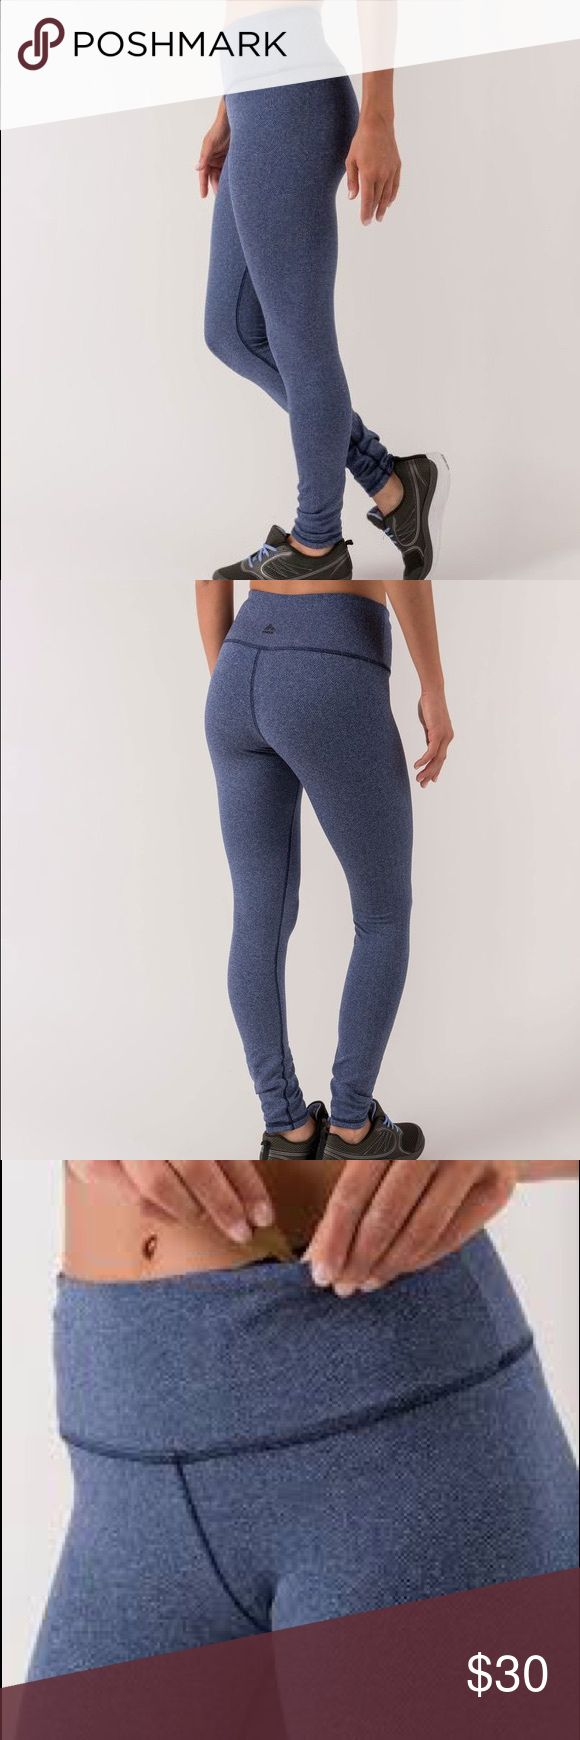 RBX navy herringbone patterned legging sz small Jacquard woven knit leggings constructed for warmth and flexibility; moisture-wicking technology keeps you dry as things heat up. An advanced look with a traditional taste, these leggings will enhance your workout wardrobe exponentially. Little to no signs of wear. Some stain on inside not visible from outside. Reebok Pants Leggings